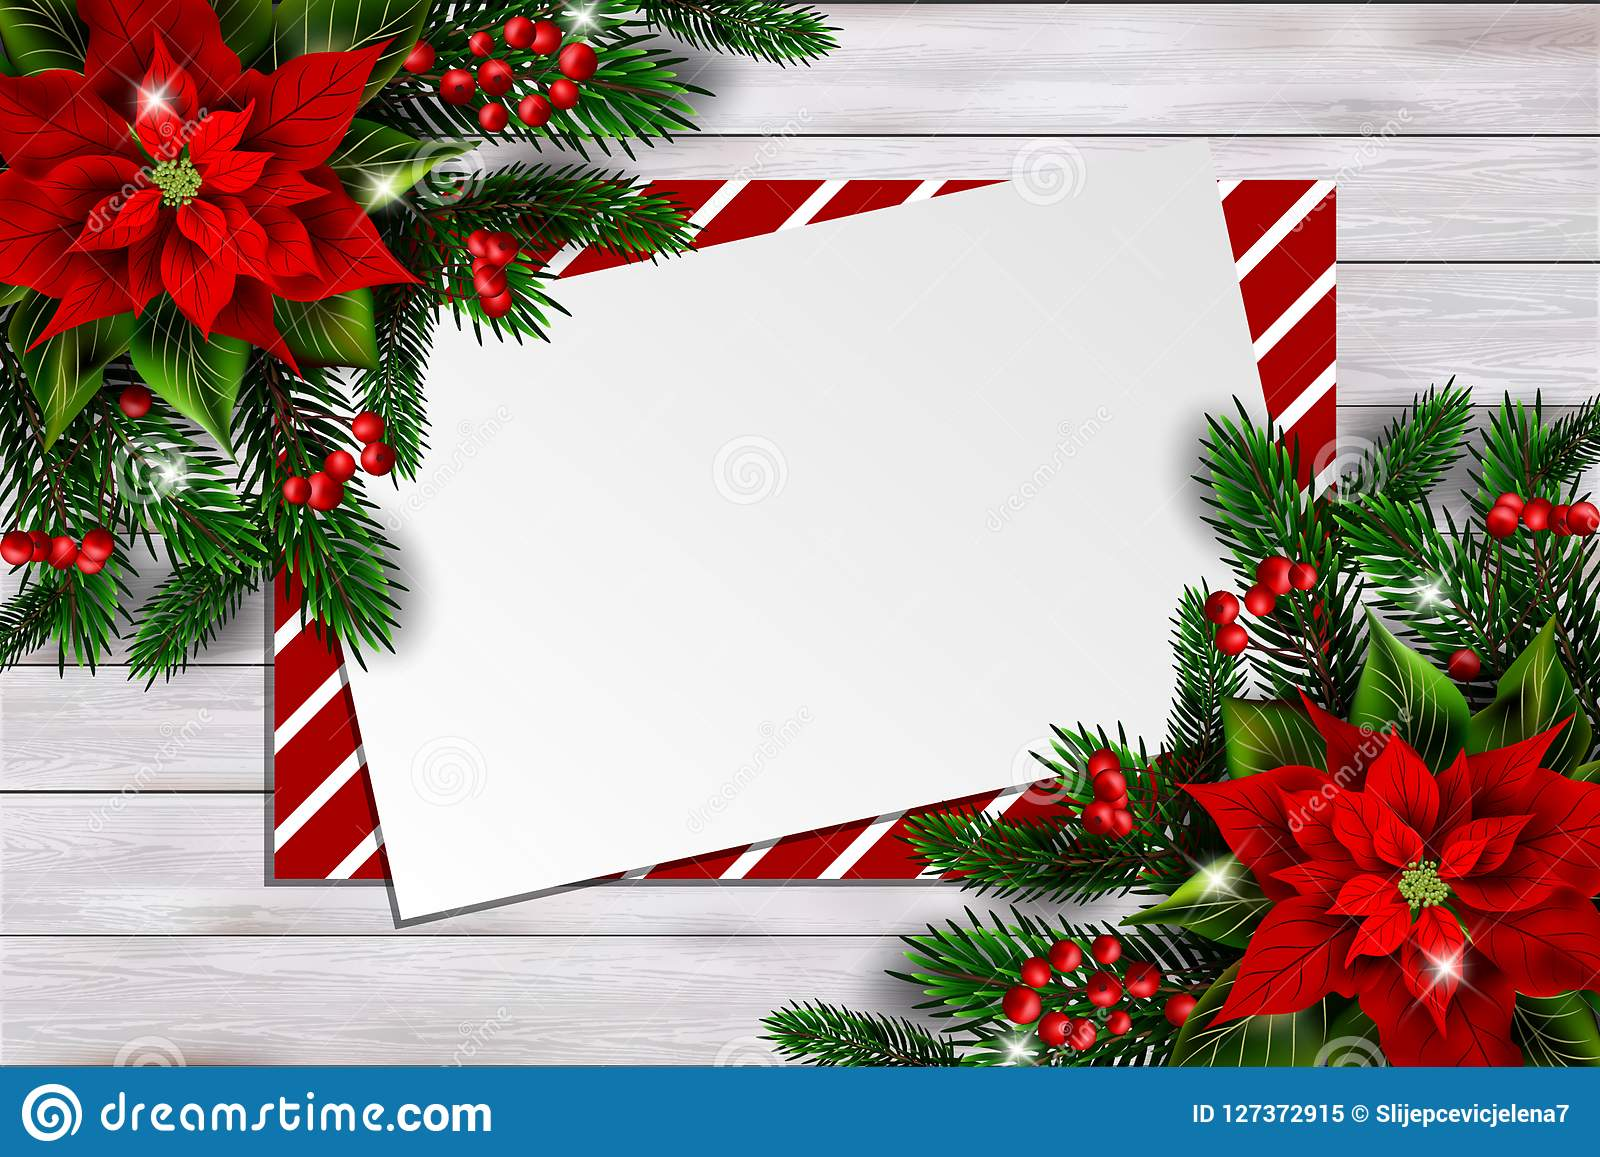 christmas background with poinsettia and empty card stock vector illustration of banner board 127372915 https www dreamstime com christmas background poinsettia empty card christmas background poinsettia empty card copy space text image127372915